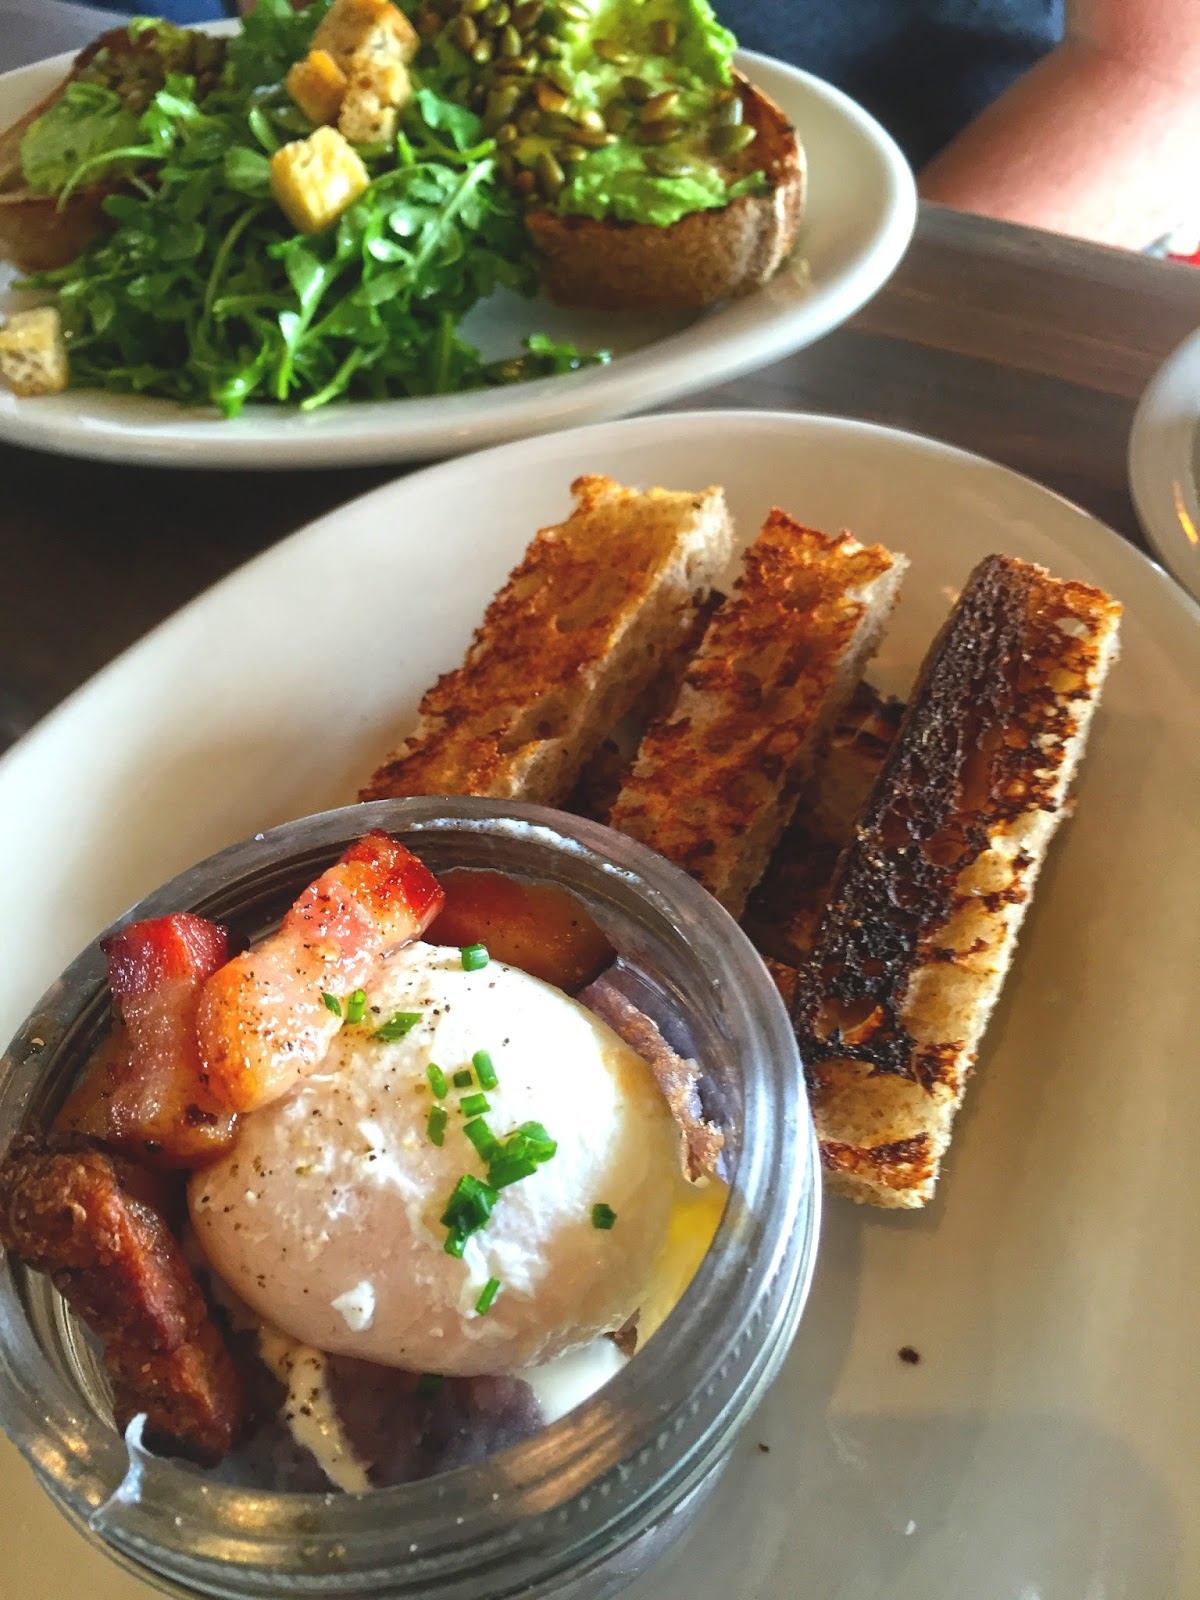 George Eats: Eat This: Egg-in-a-Jar @ Bob\'s Well Bread